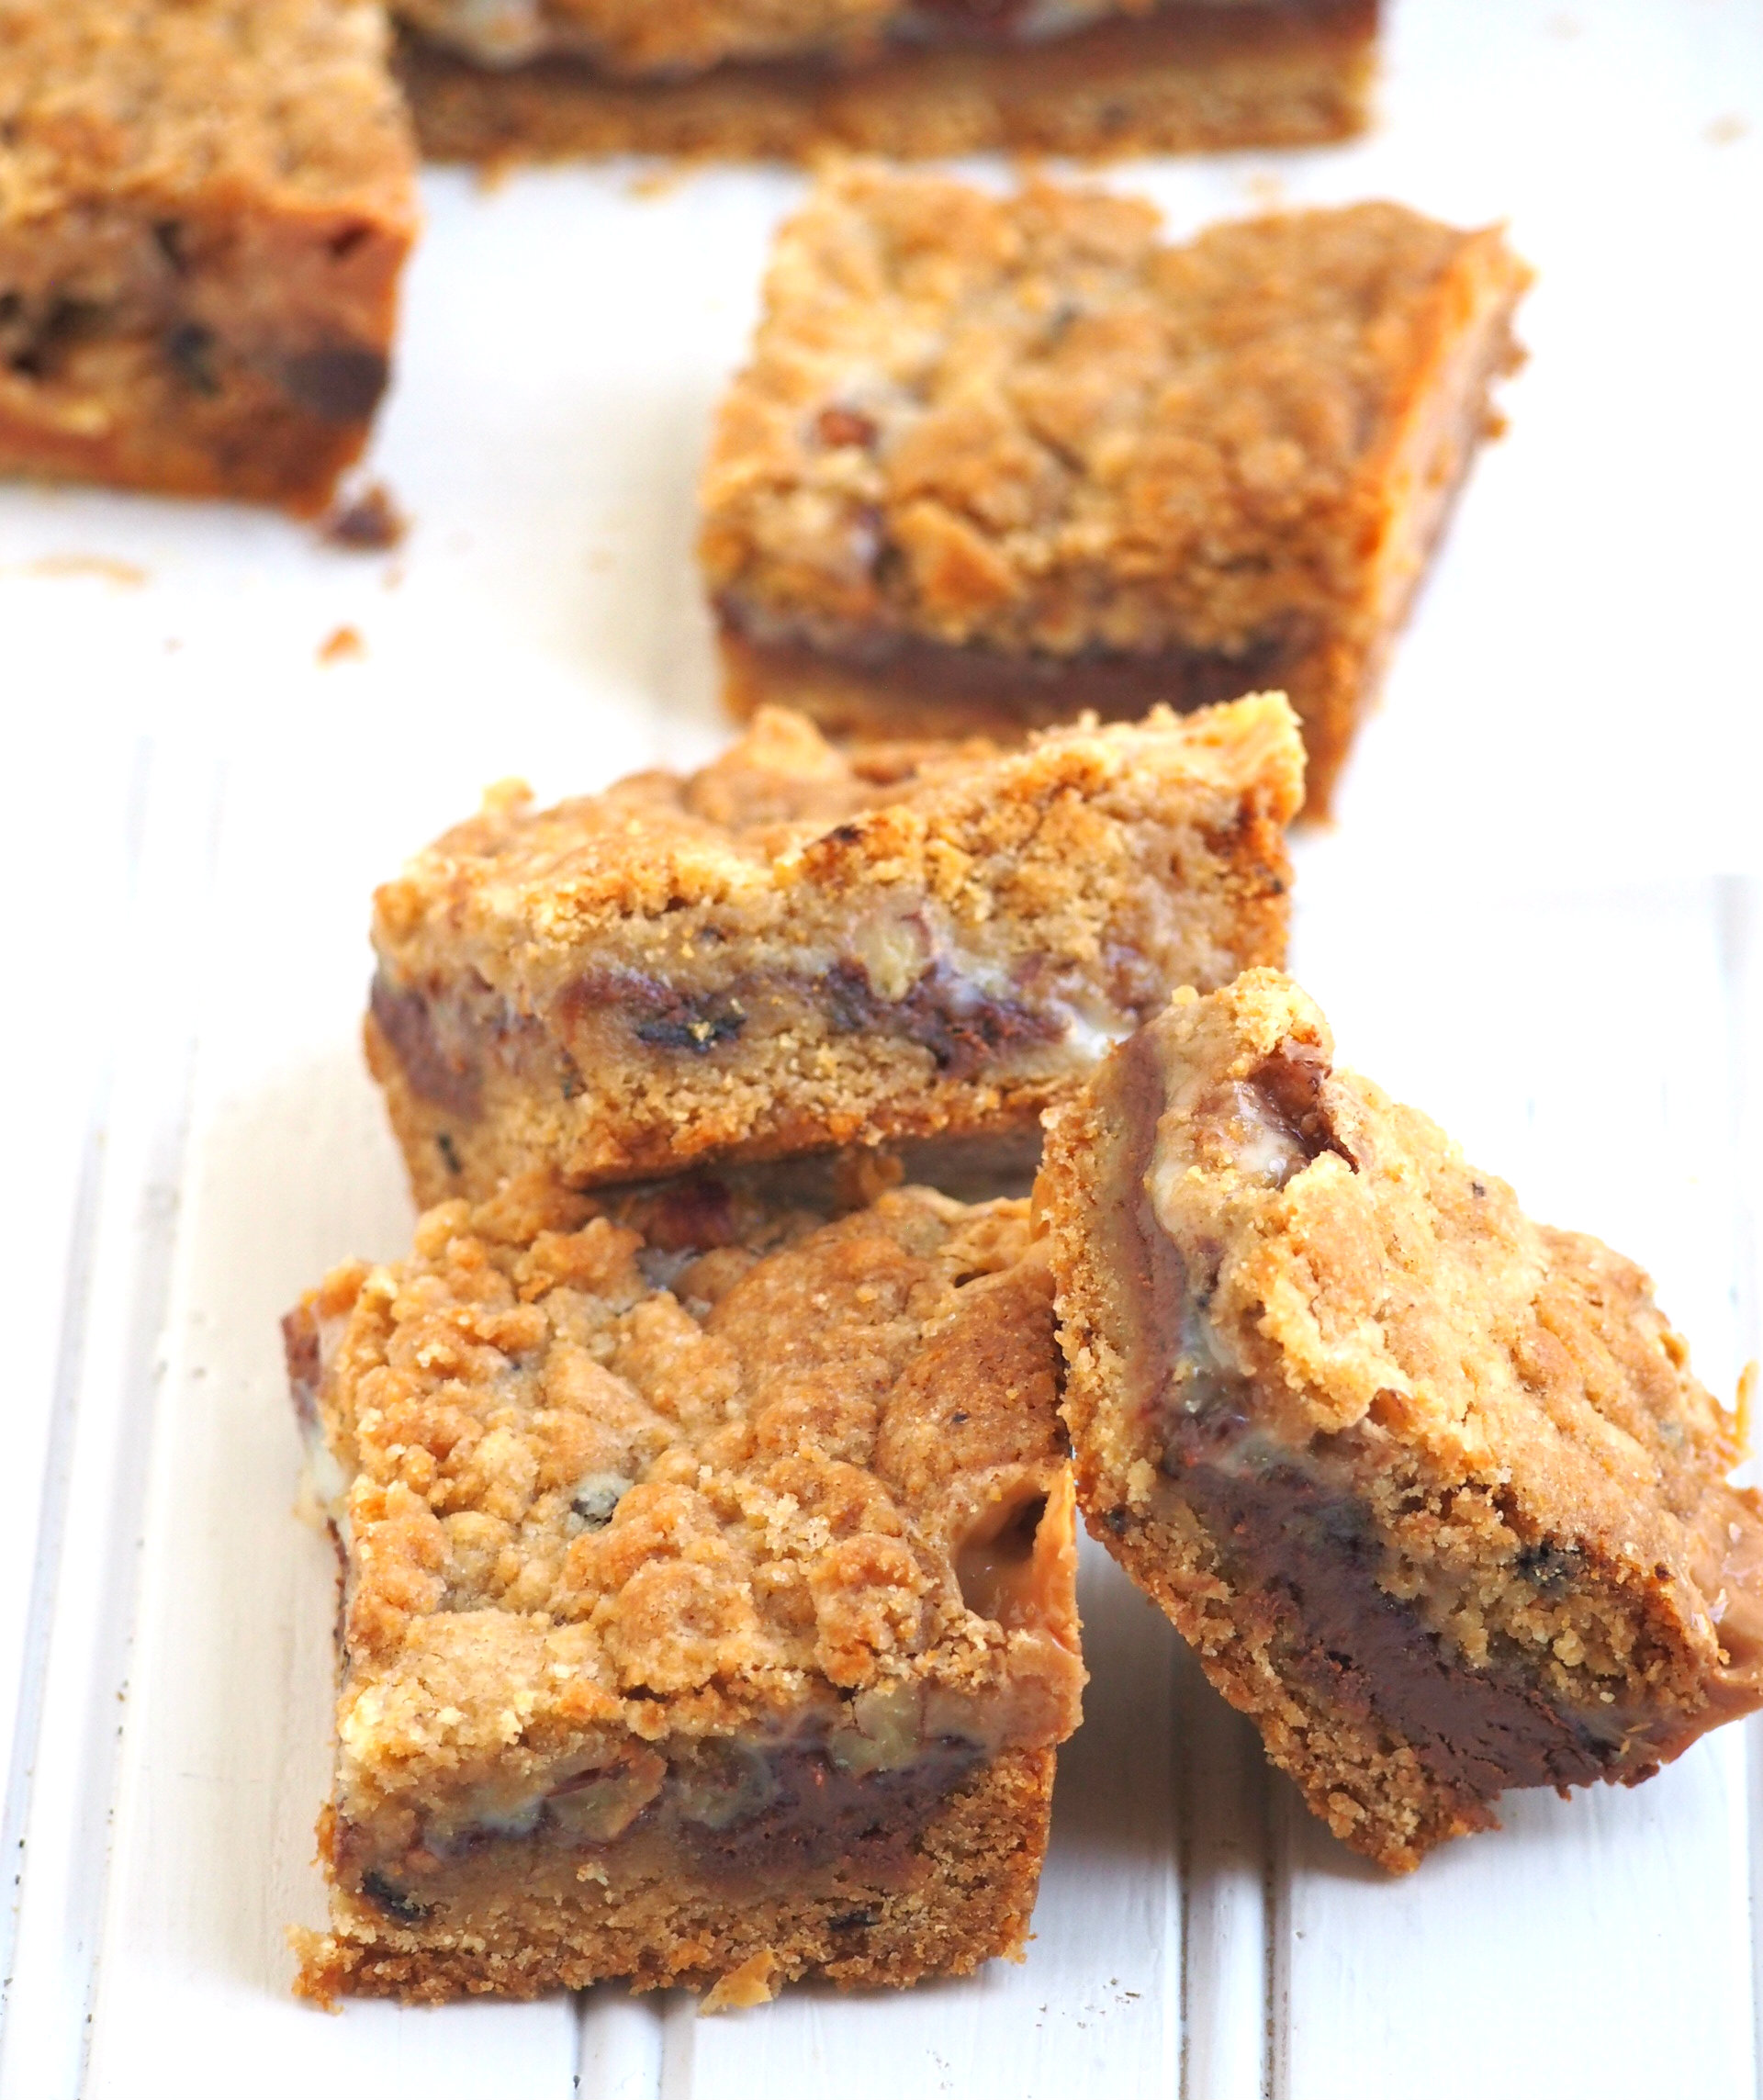 These cookie bars are oozing with sweetened condensed milk and Nutella in the centers. They are definitely addictive little treats.